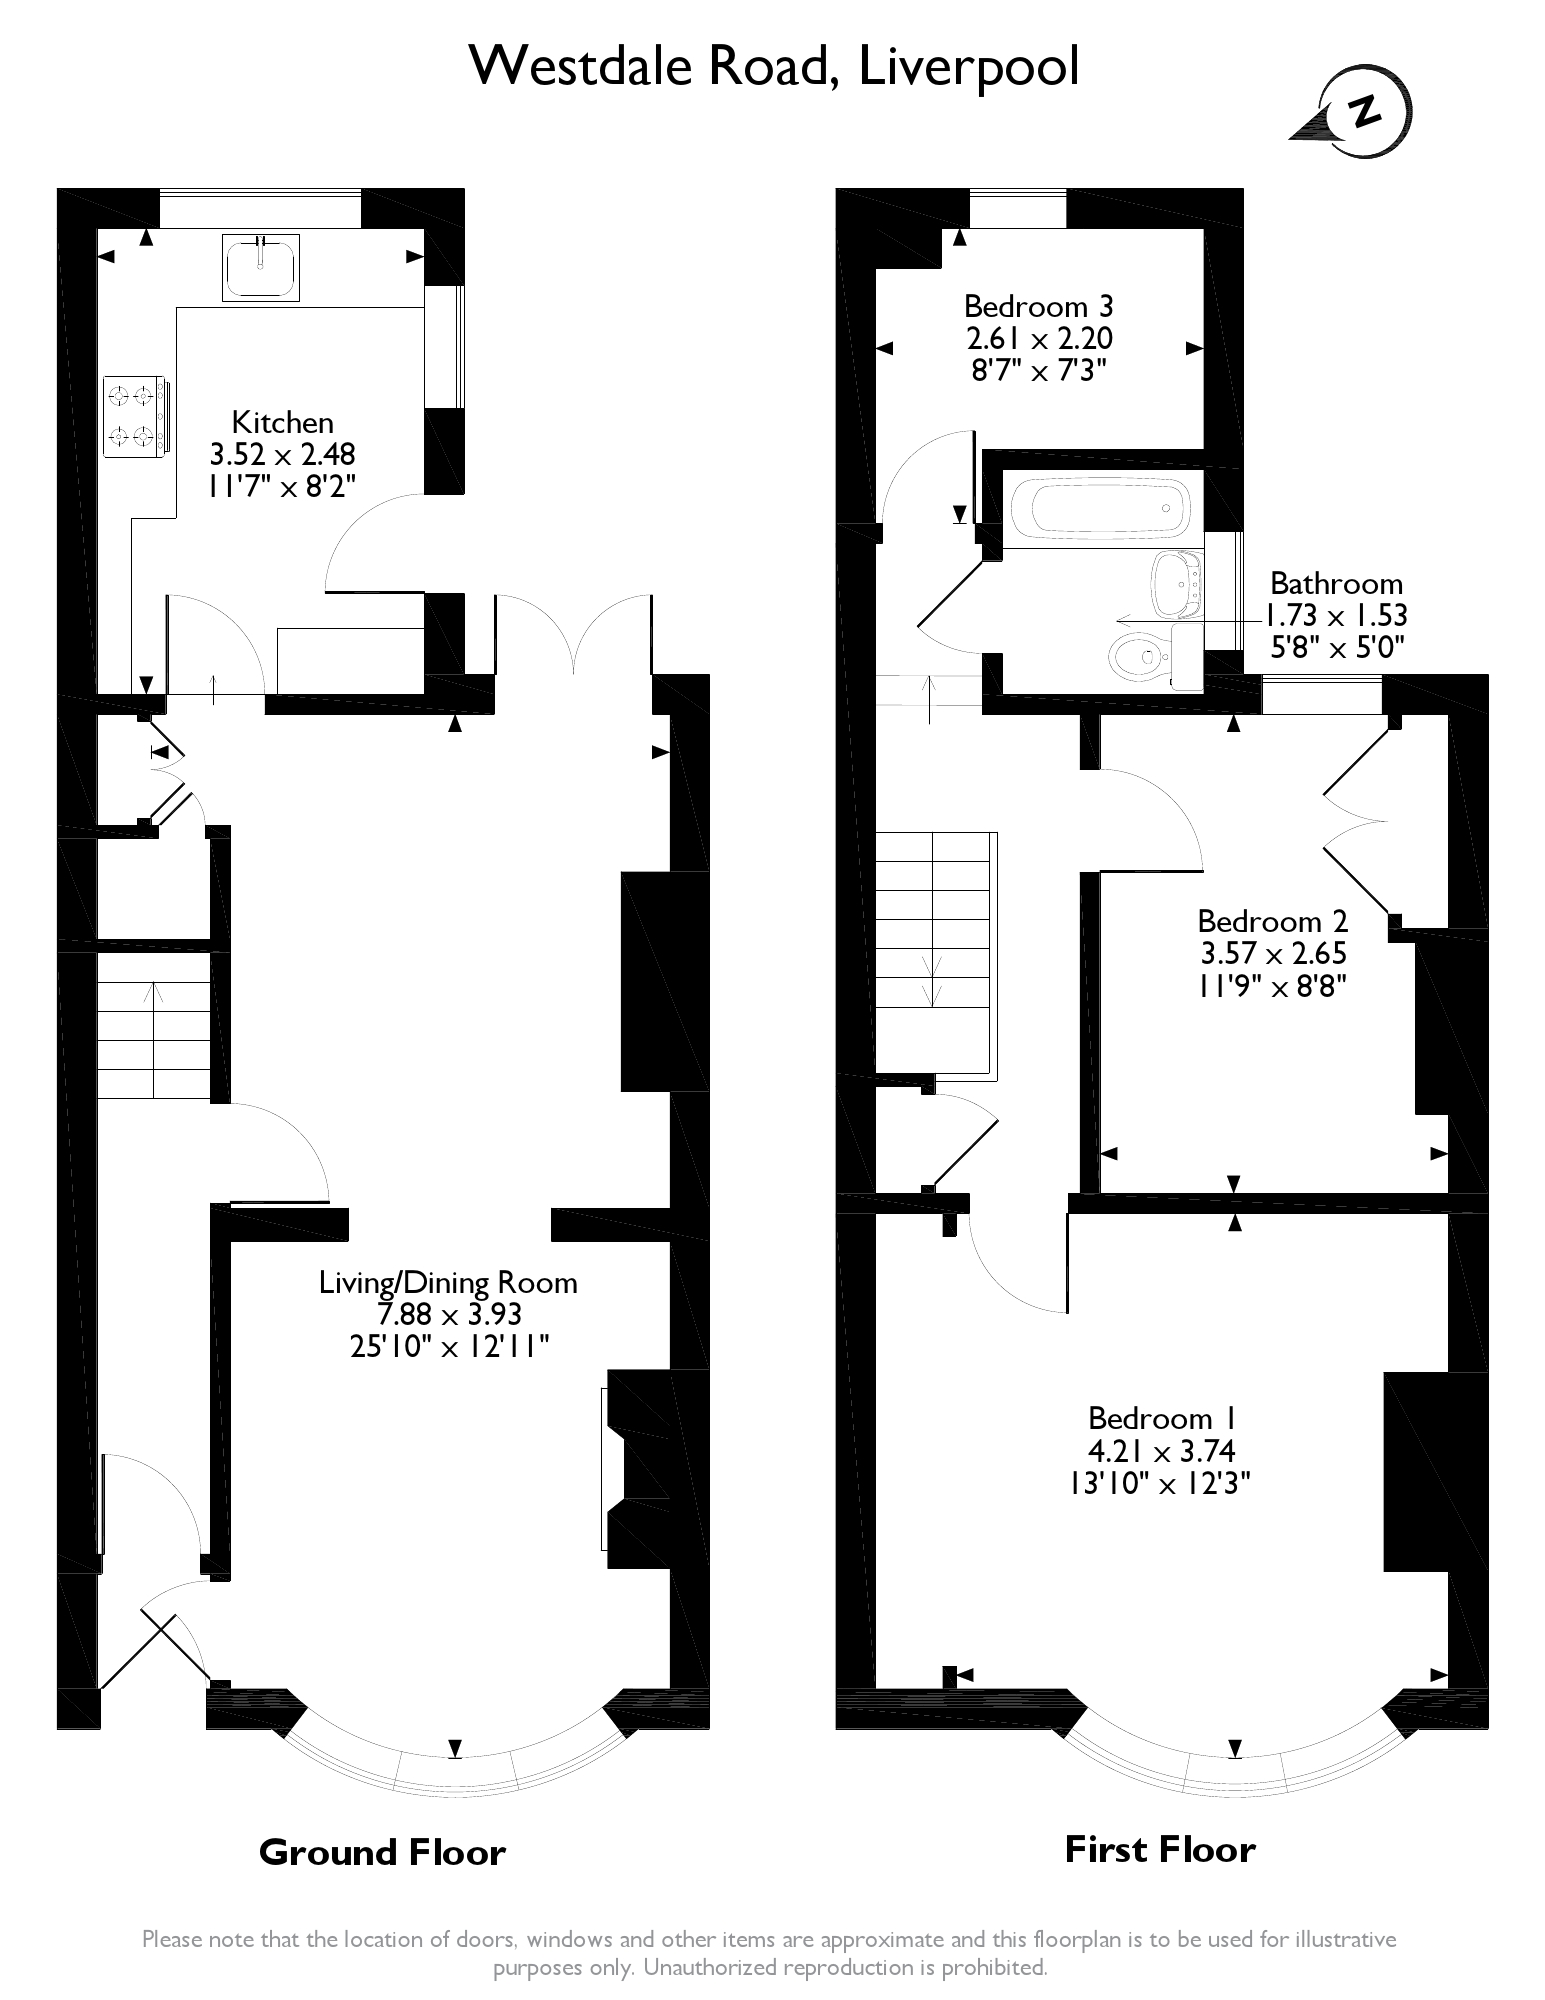 Westdale Road Liverpool, L15 floor plan